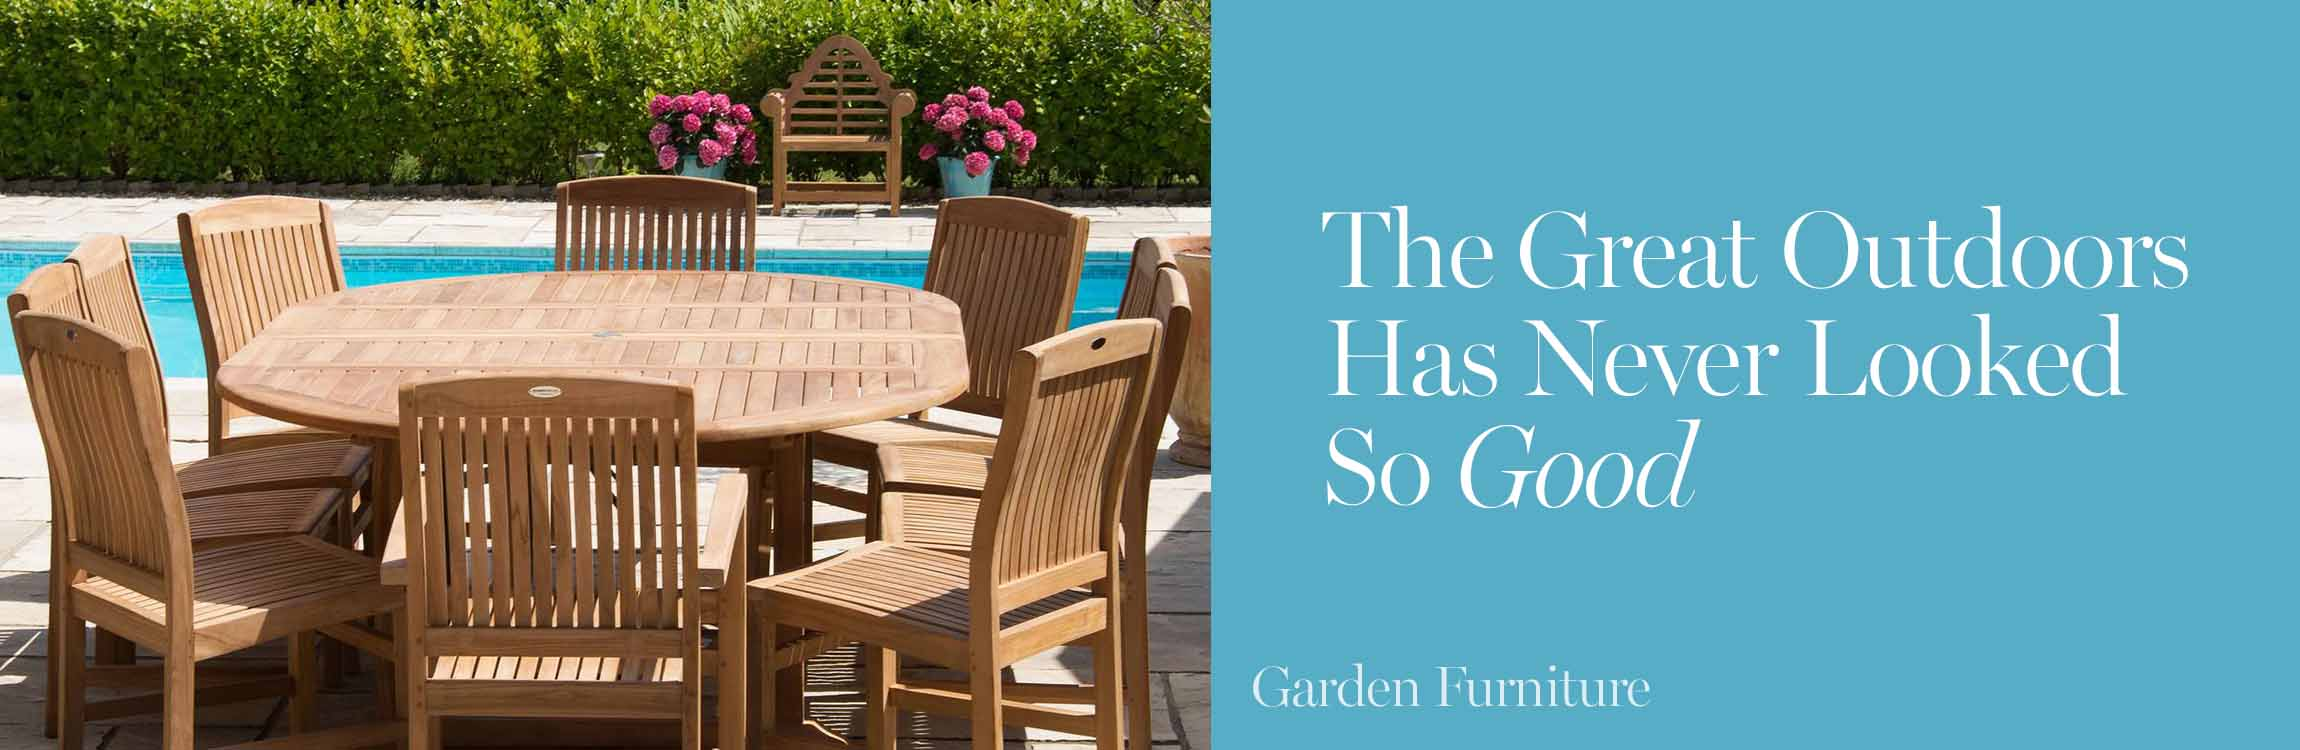 Garden Furniture / Patio Furniture